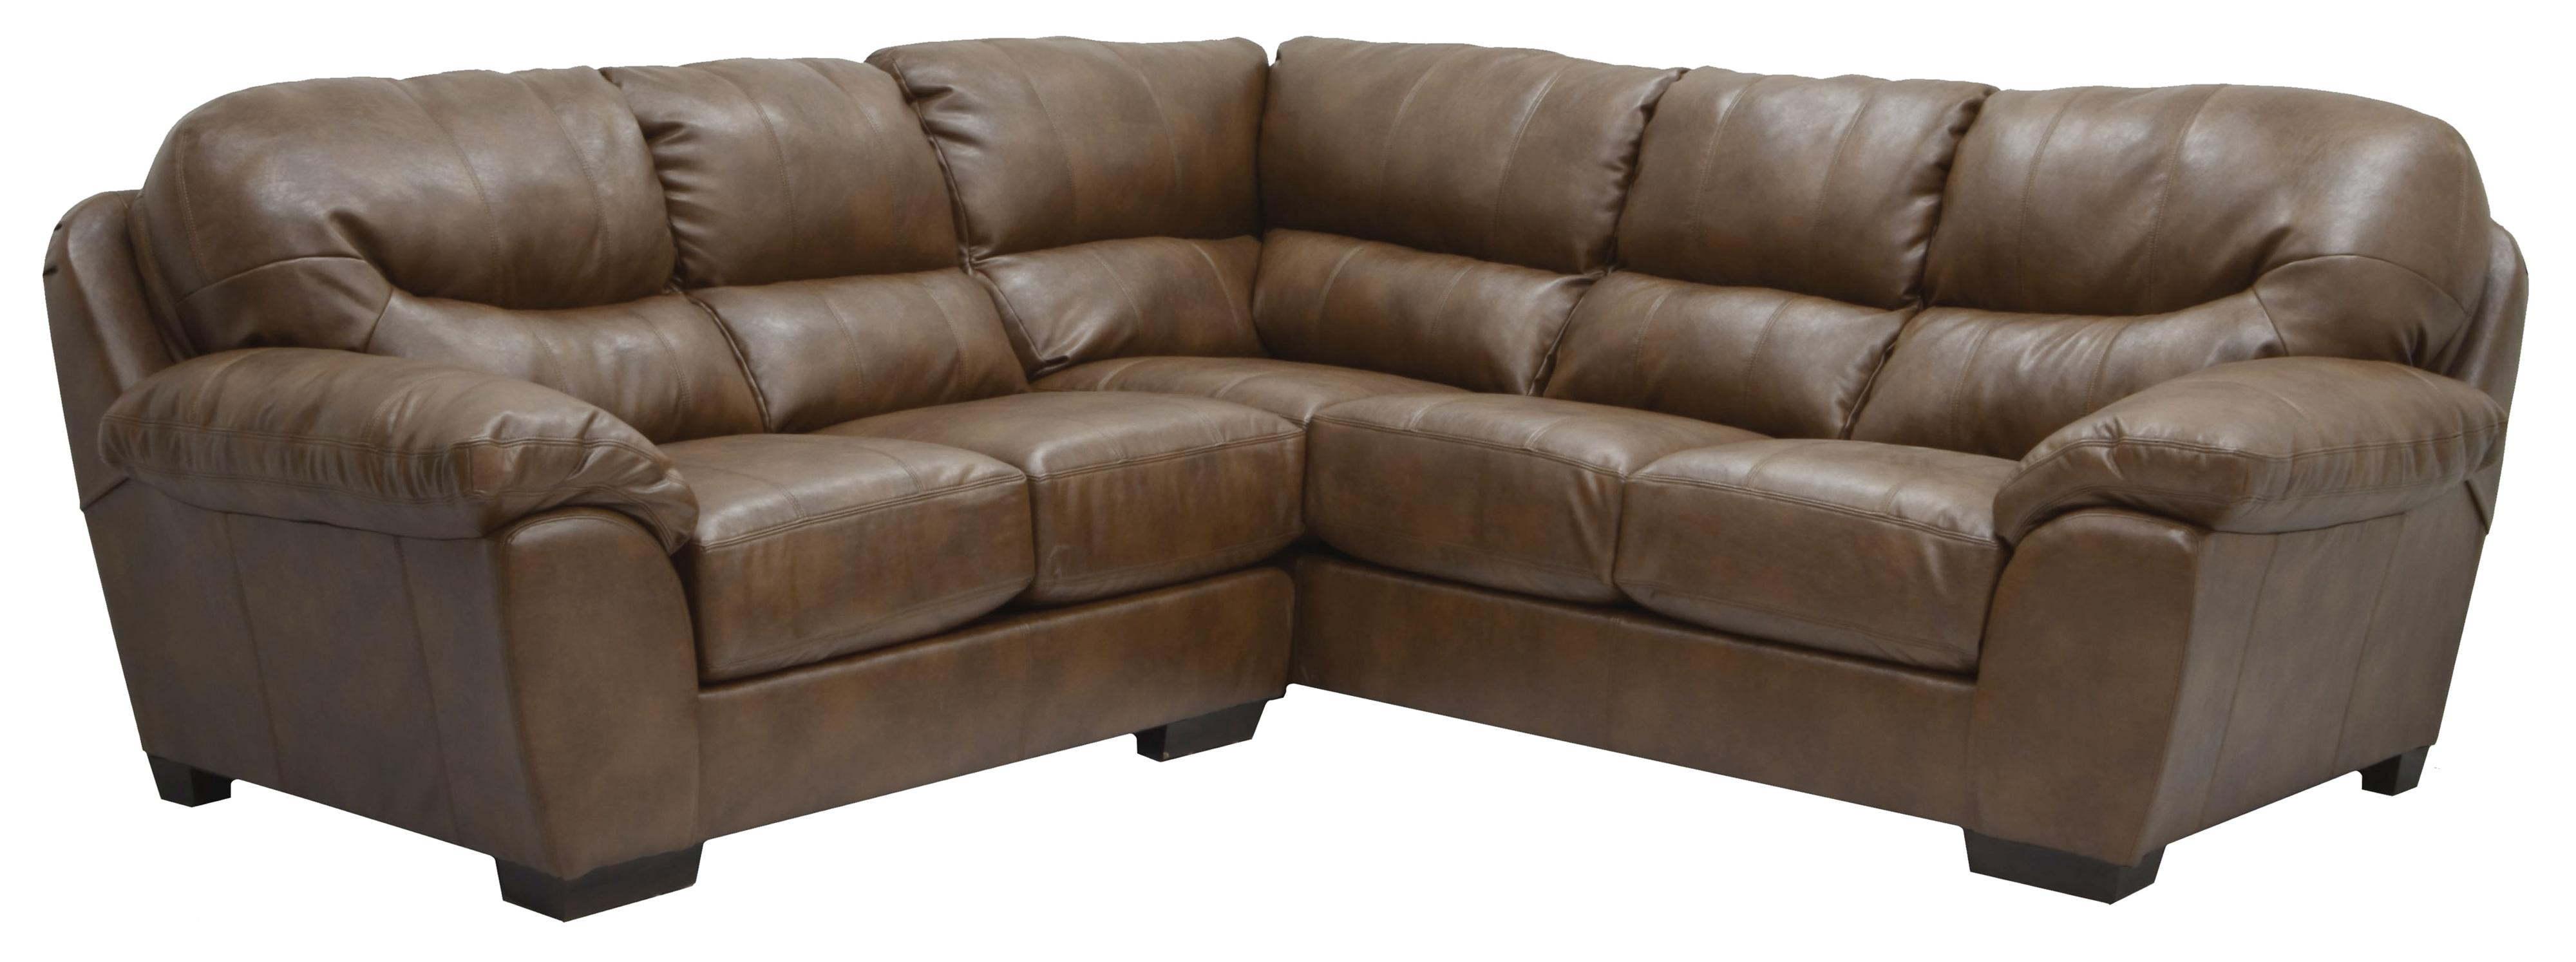 Fashionable Jackson 6 Piece Power Reclining Sectionals Within Sectional Sofa In Corner Configurationjackson Furniture (View 4 of 20)